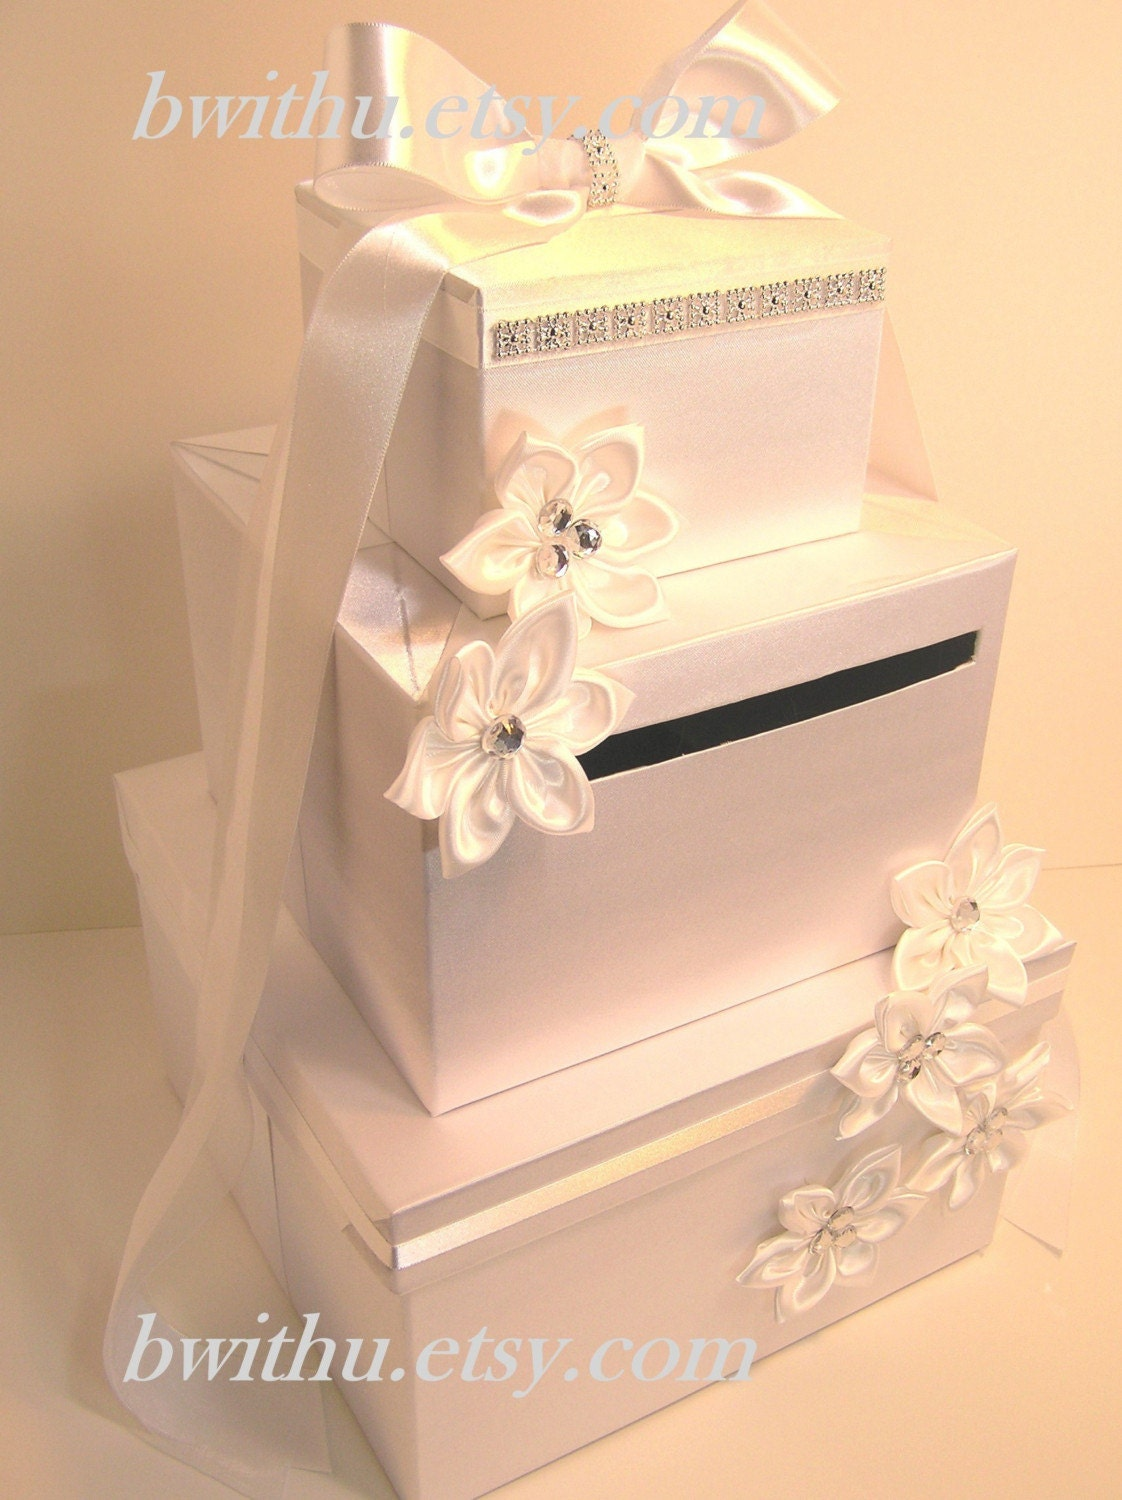 Wedding Gift Box Etsy : Wedding Card Box White Gift Card Box Money Box